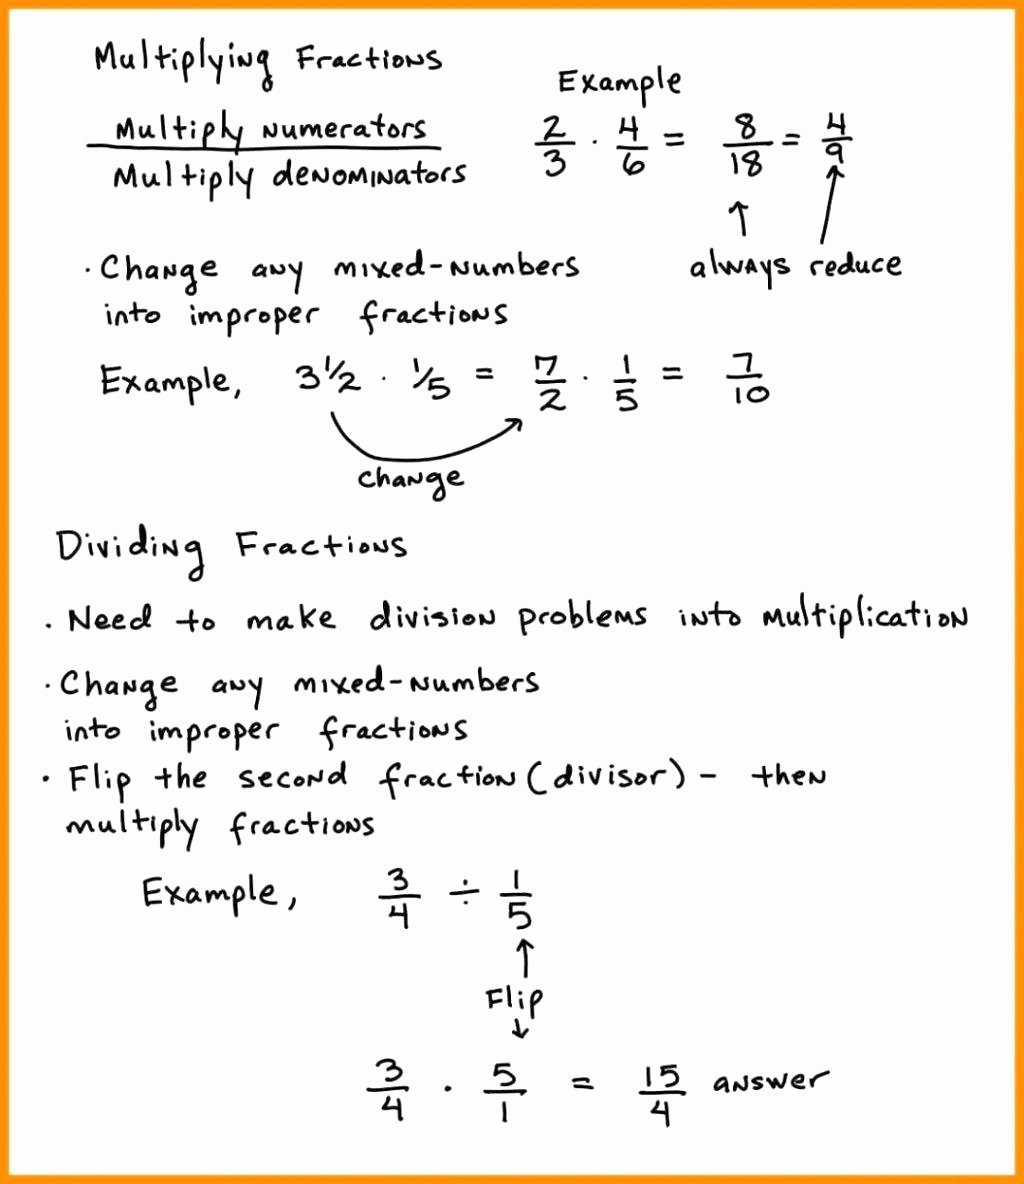 Multiplying Mixed Numbers Worksheet Beautiful Mixed Number to Improper Fraction Worksheet Pdf